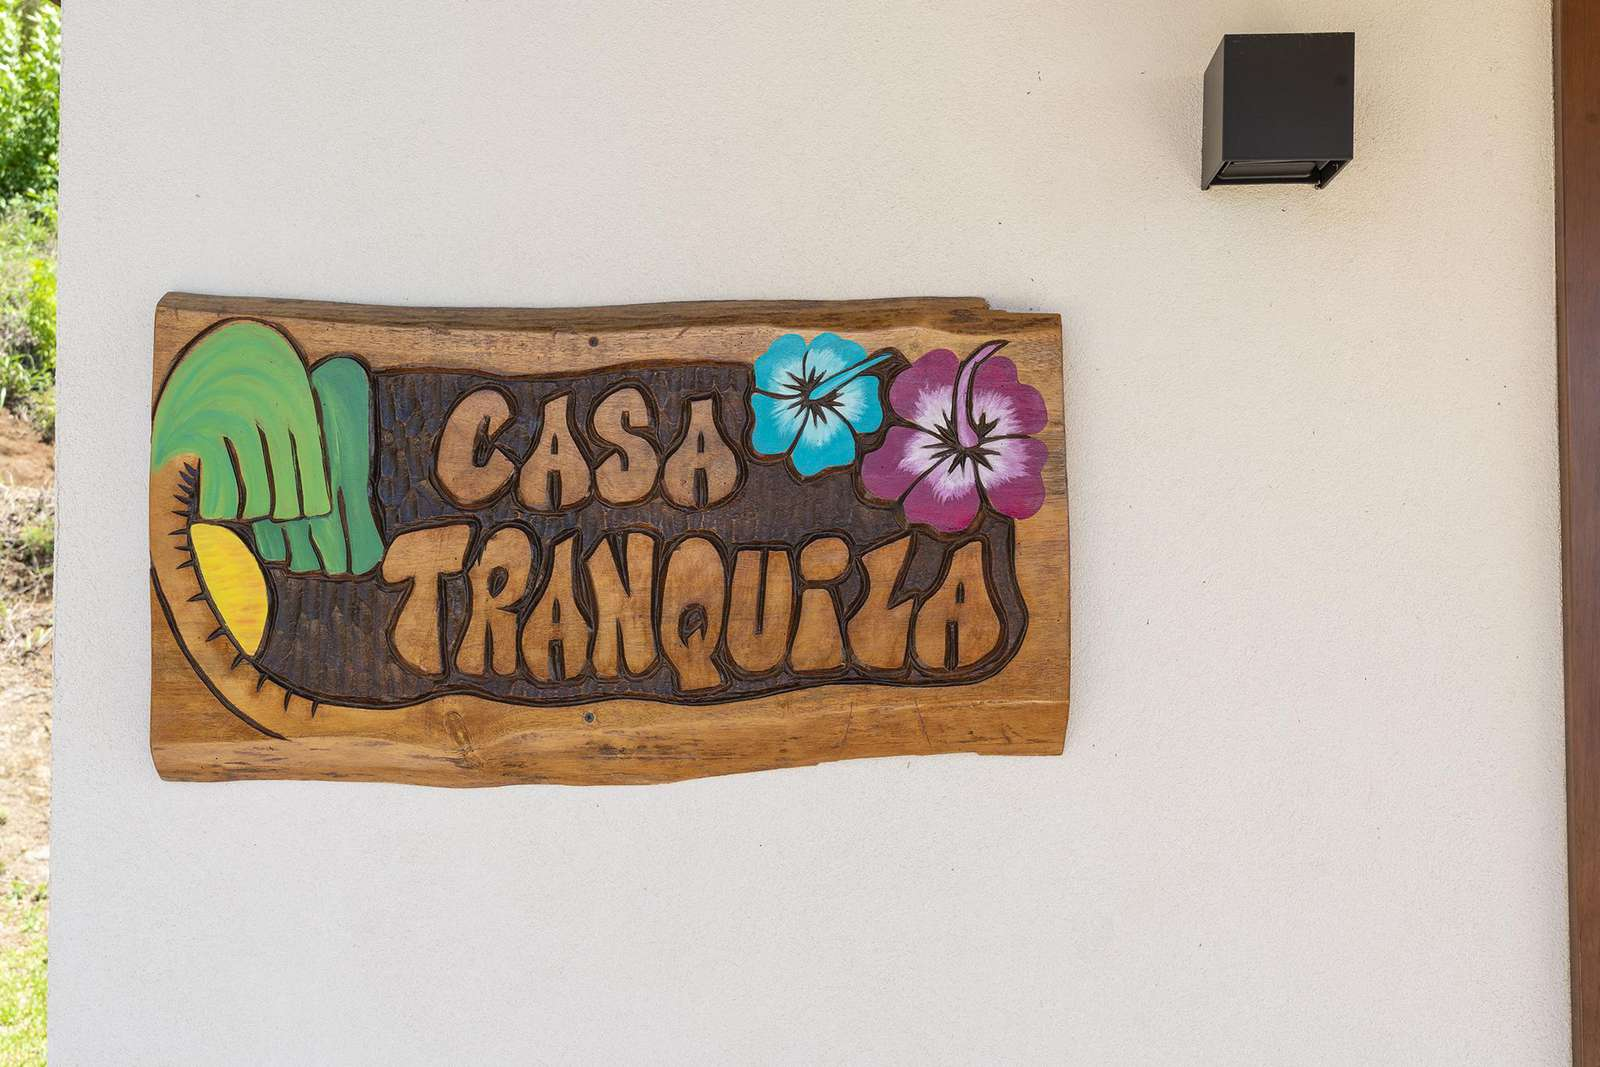 Welcome to Casa Tranquila